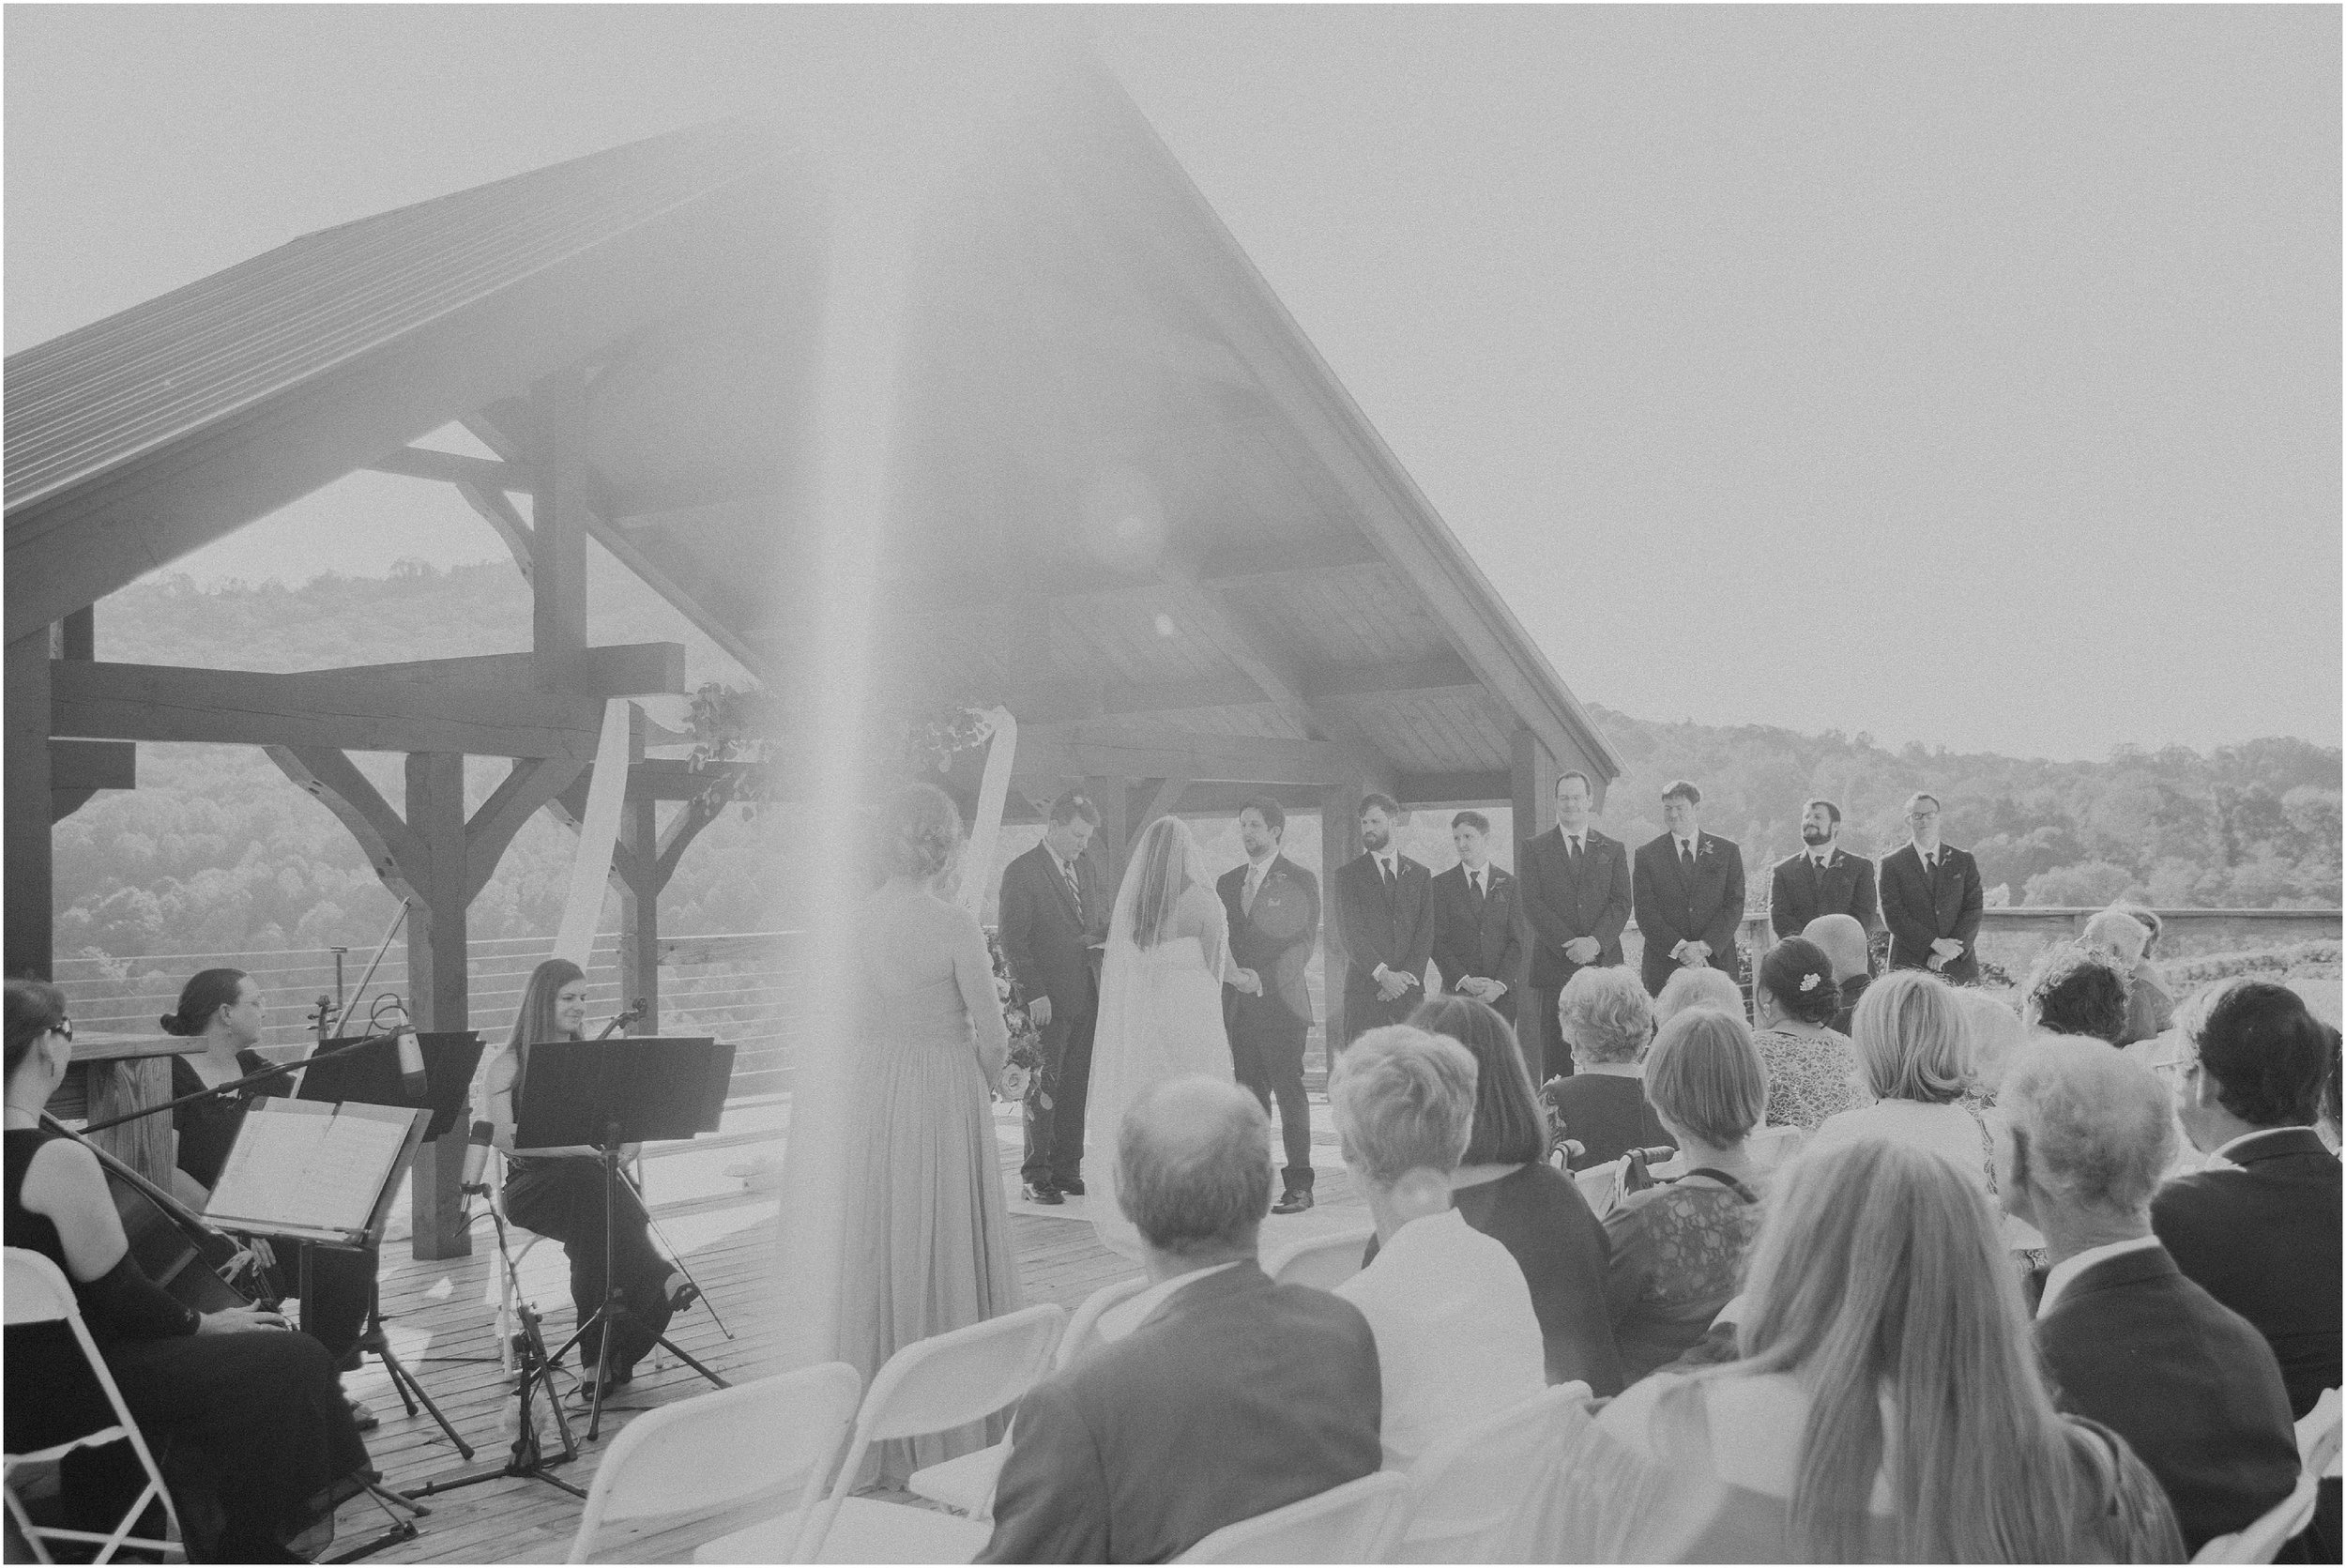 Sun flare over wedding ceremony at Debarge Winery in Lafayette, Georgia